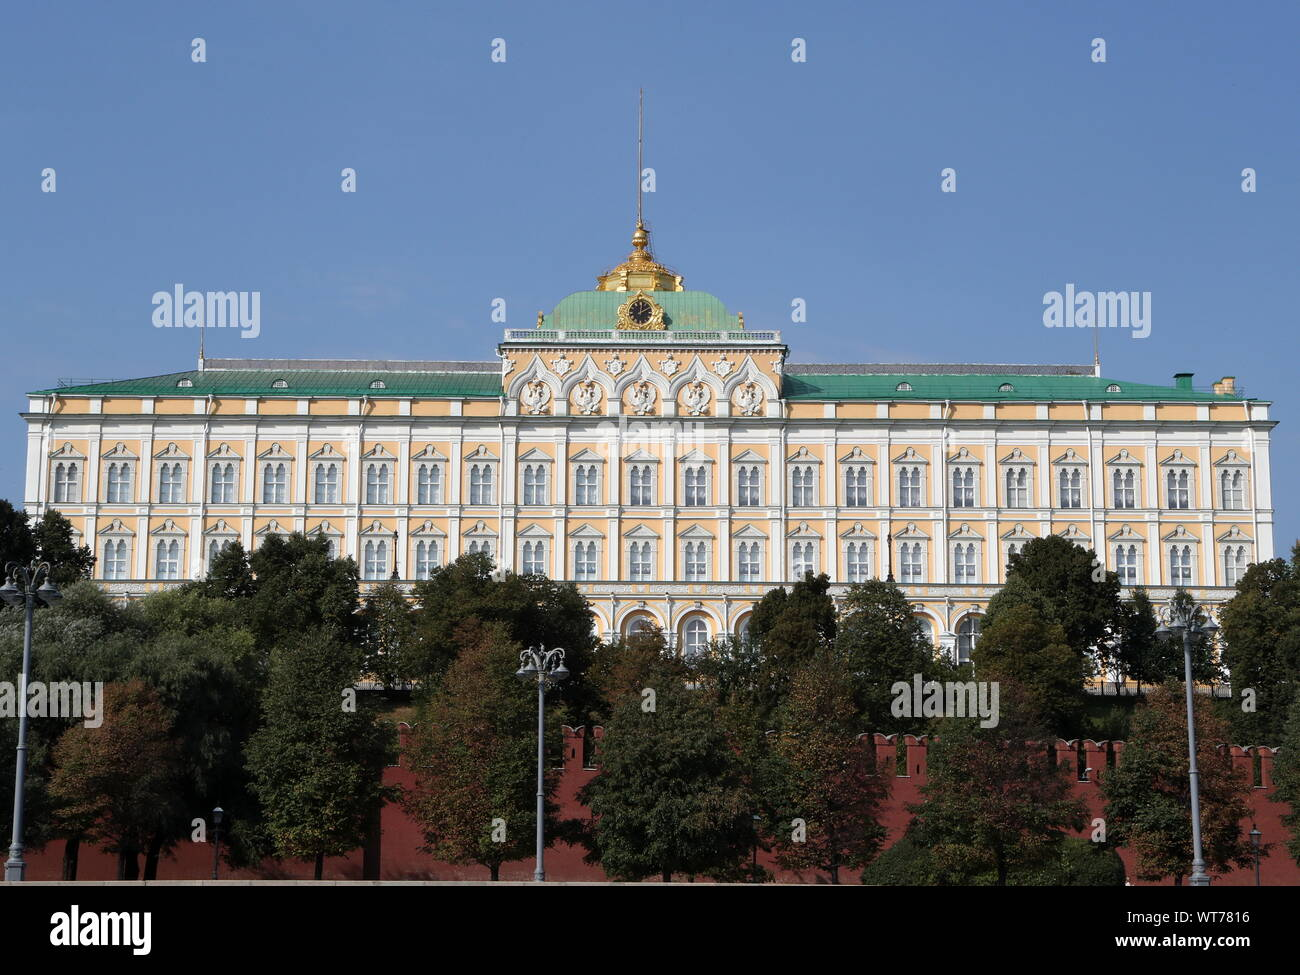 Moscow, Russia. 11th Sep, 2019. MOSCOW, RUSSIA - SEPTEMBER 11, 2019: A view of the Moscow Kremlin. Sergei Karpukhin/TASS Credit: ITAR-TASS News Agency/Alamy Live News Stock Photo